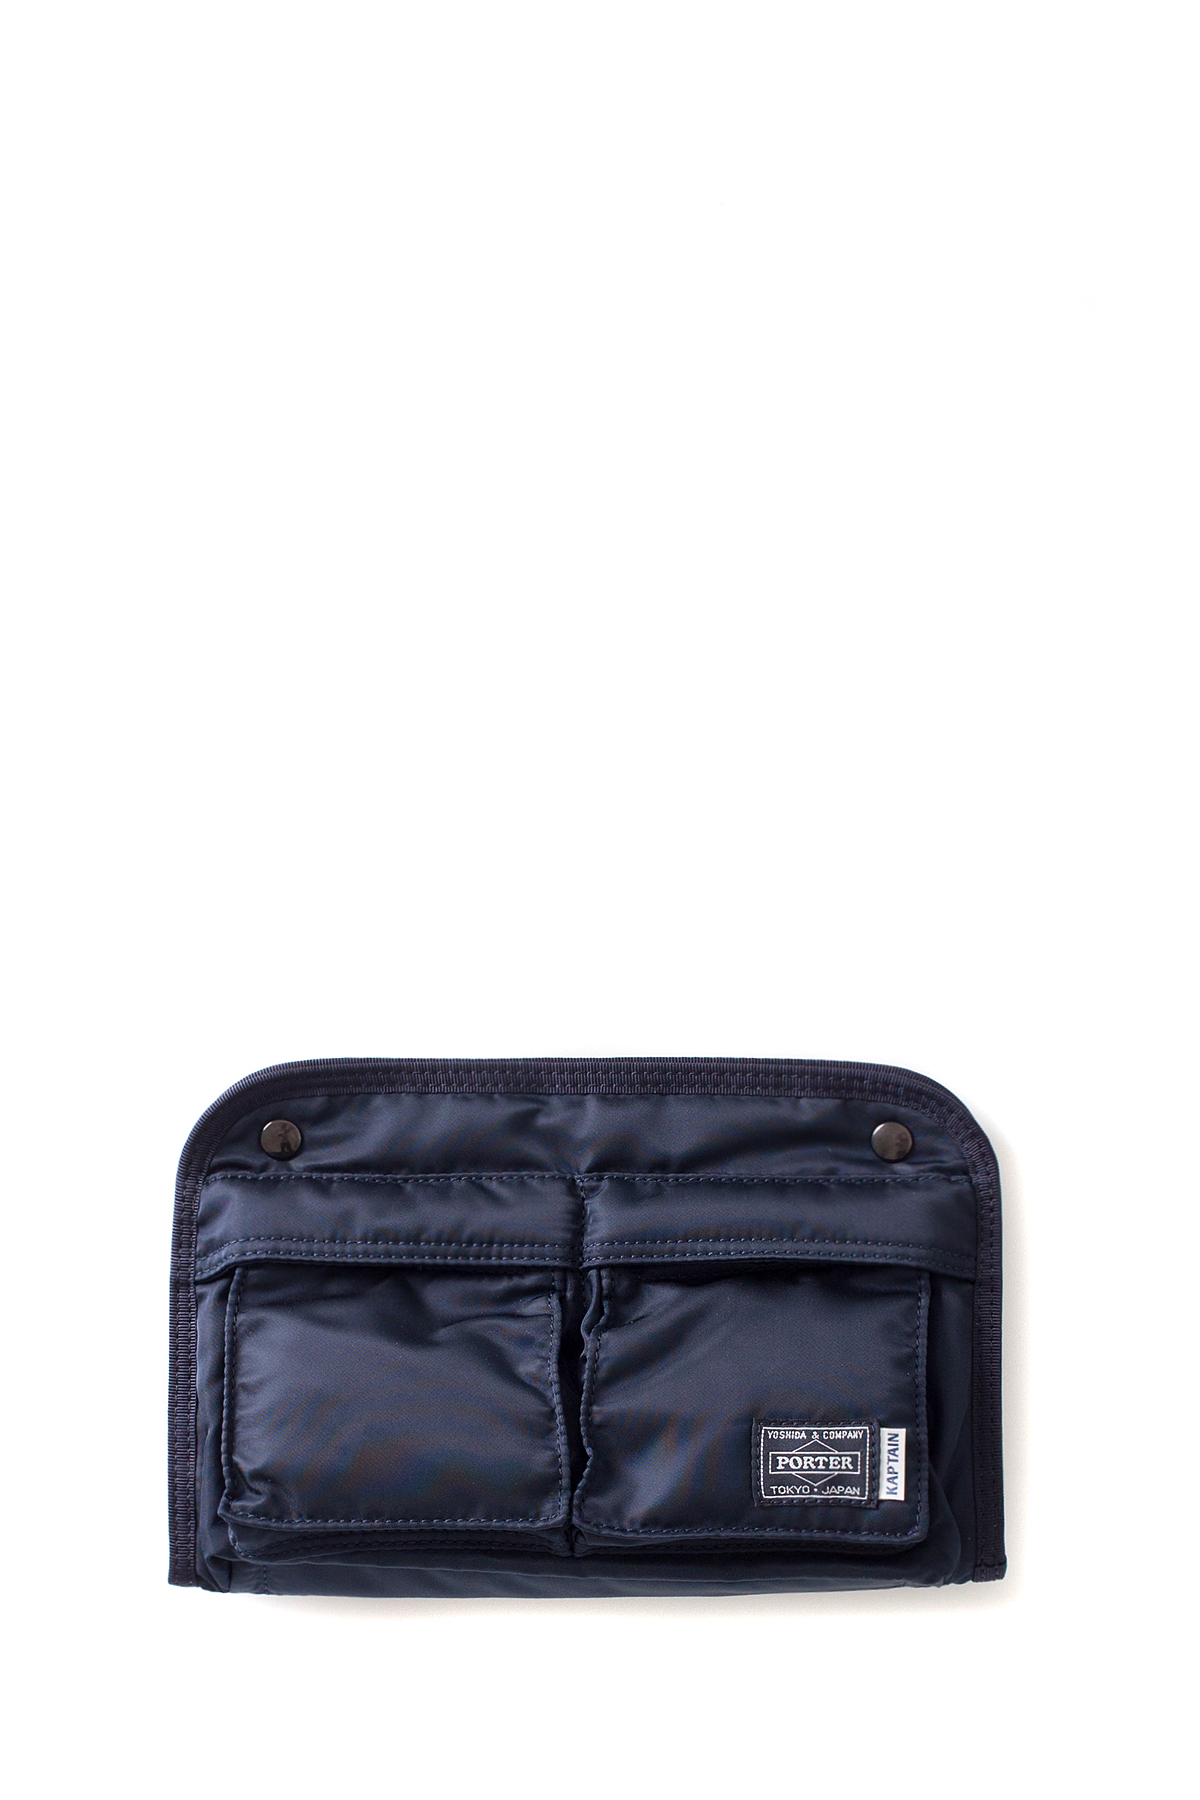 Kaptain Sunshine : Travel Bag (Navy)